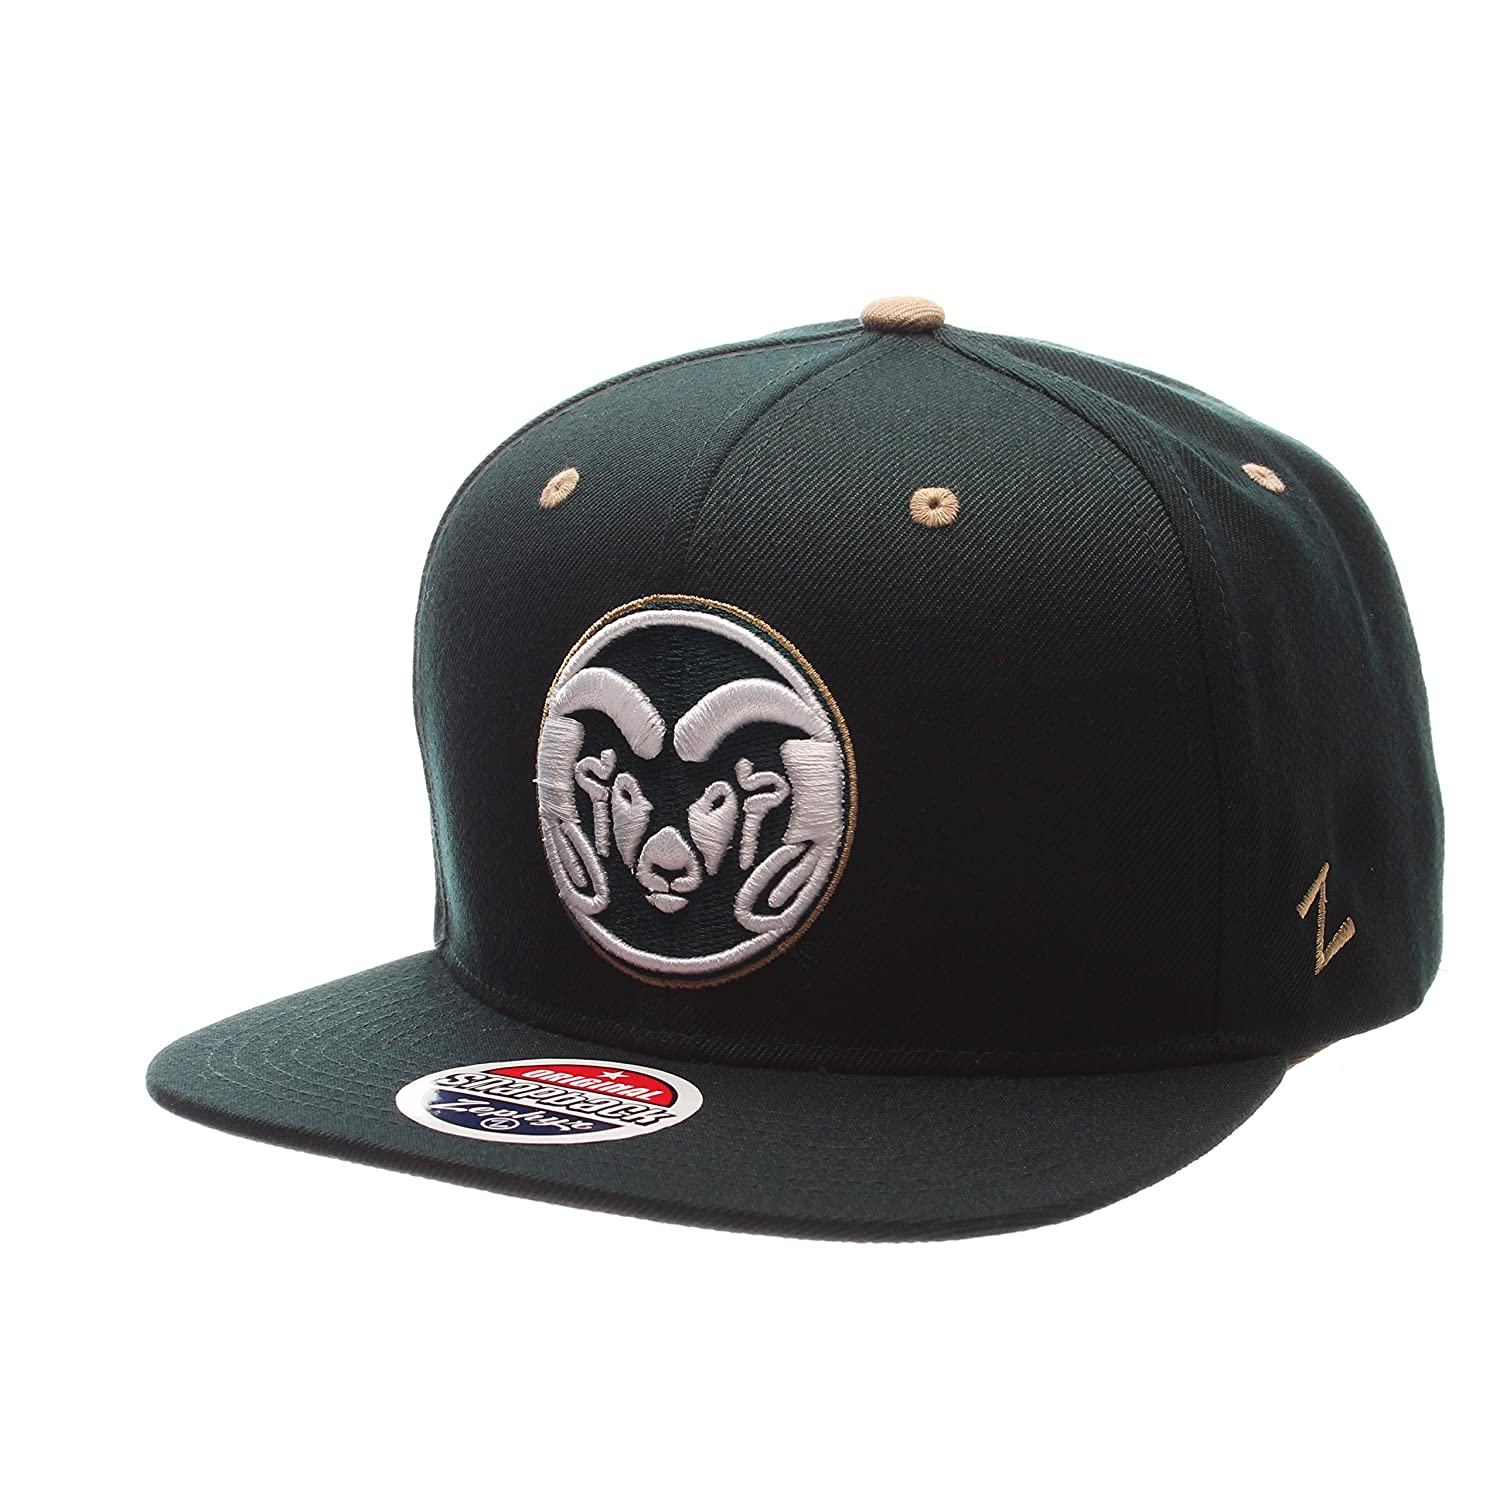 Zephyr Men 's Colorado State Rams z11 Zwool帽子グリーンAdj   B01N94ZW4E